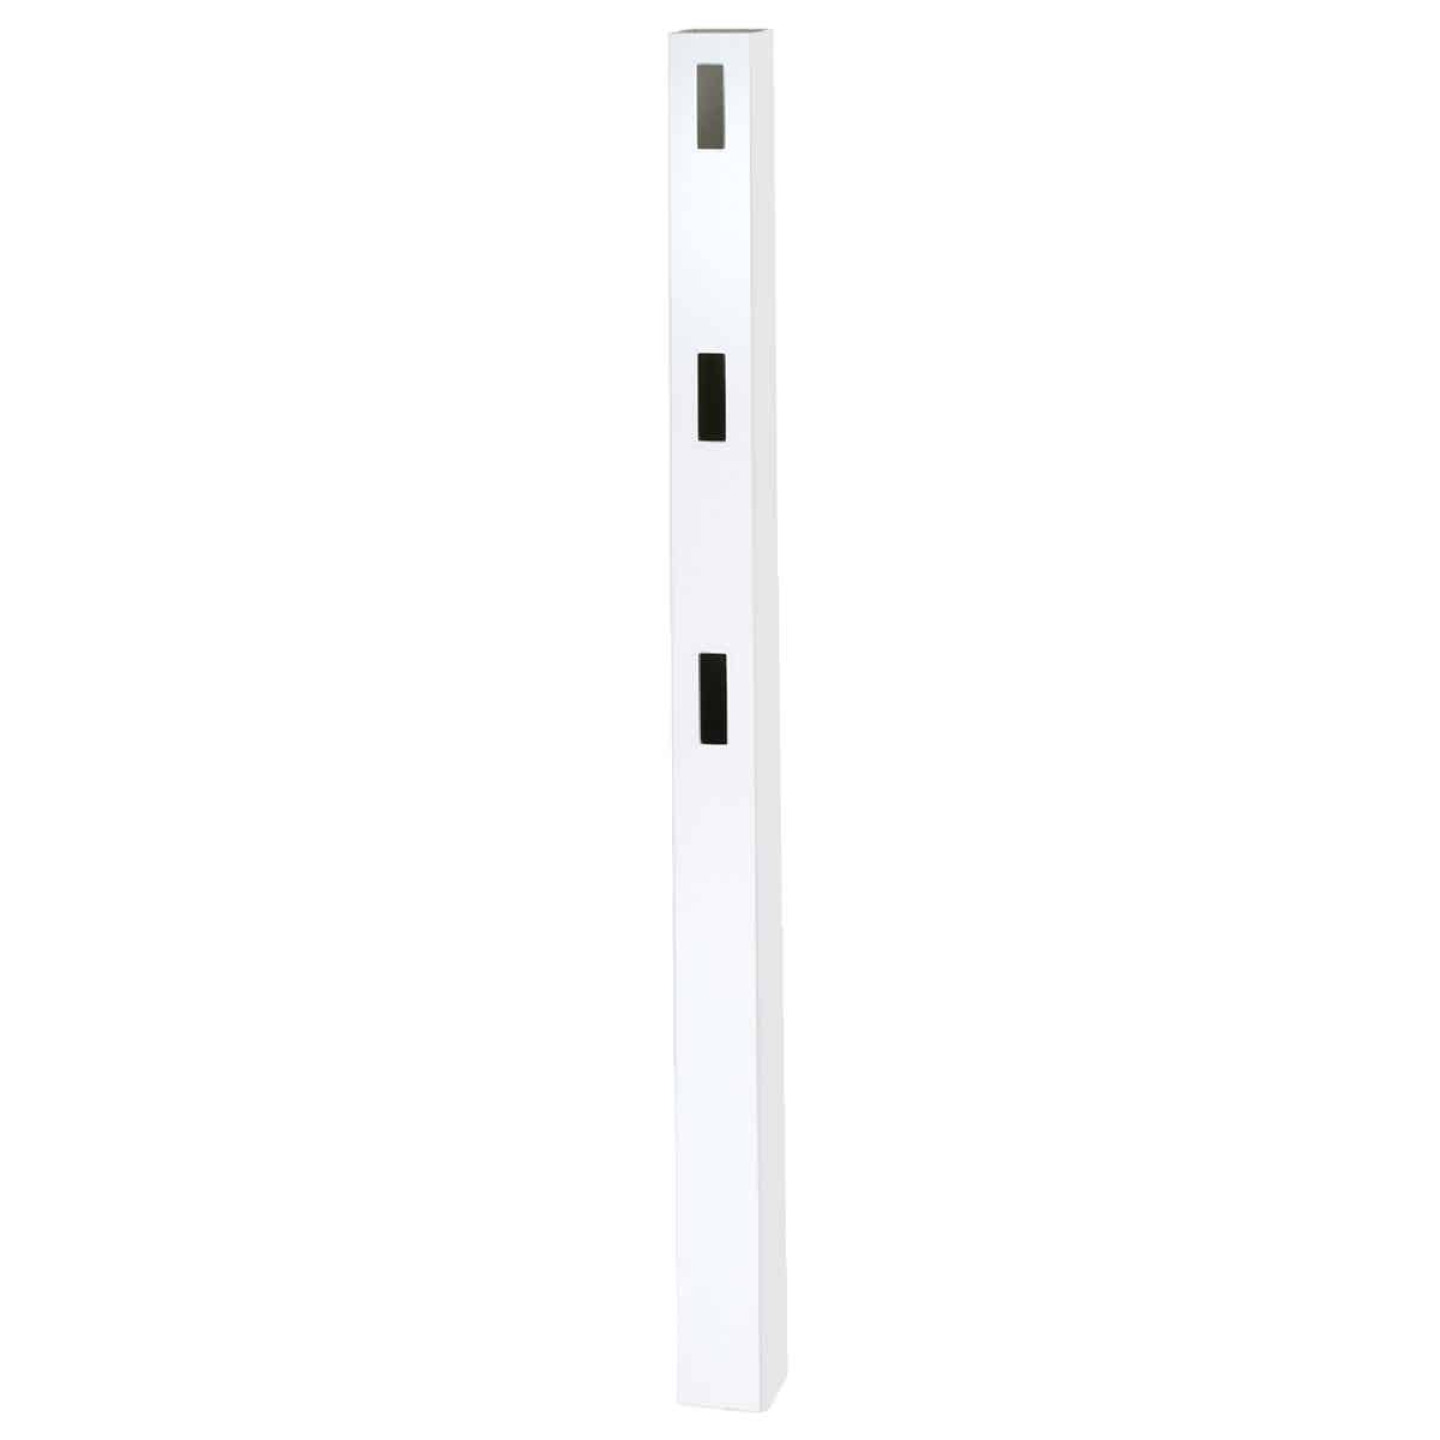 Outdoor Essentials 5 In. x 5 In. x 84 In. White End 3-Rail Fence Vinyl Post Image 3